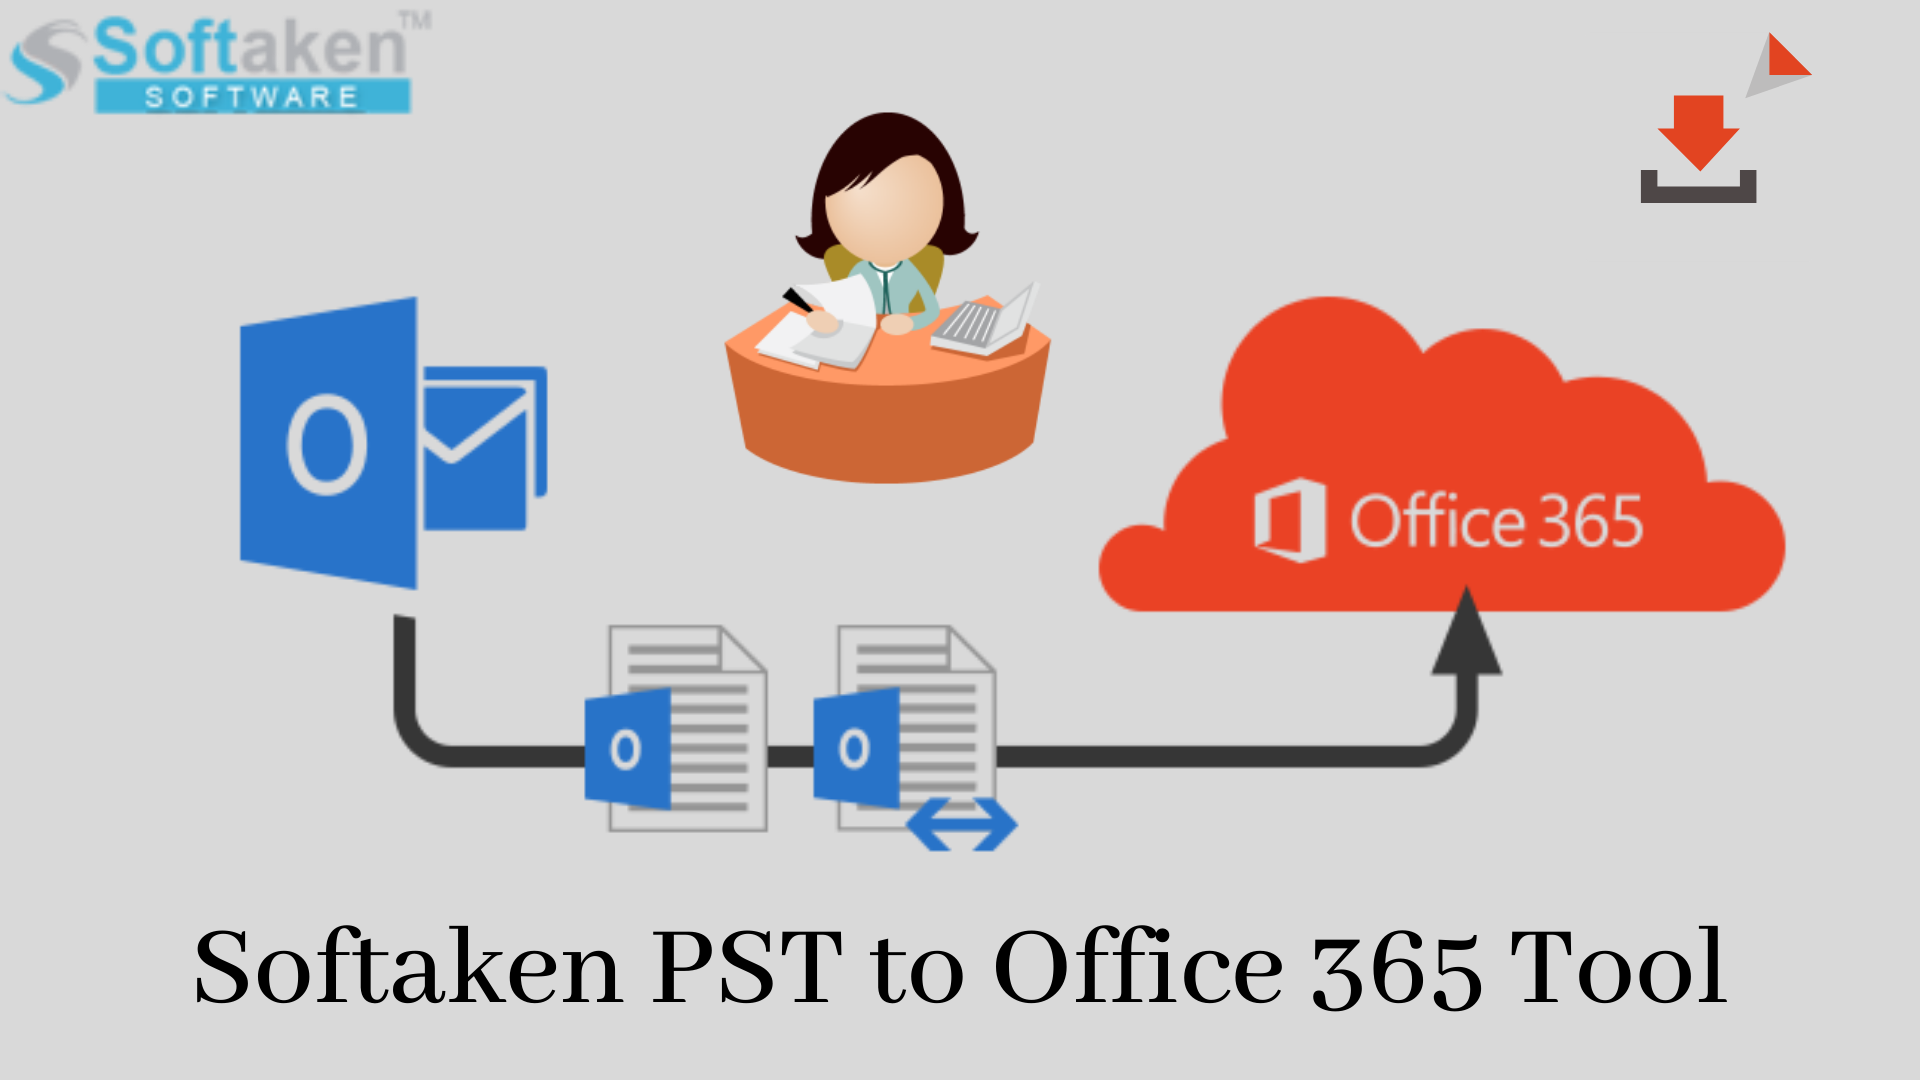 PST to Office 365